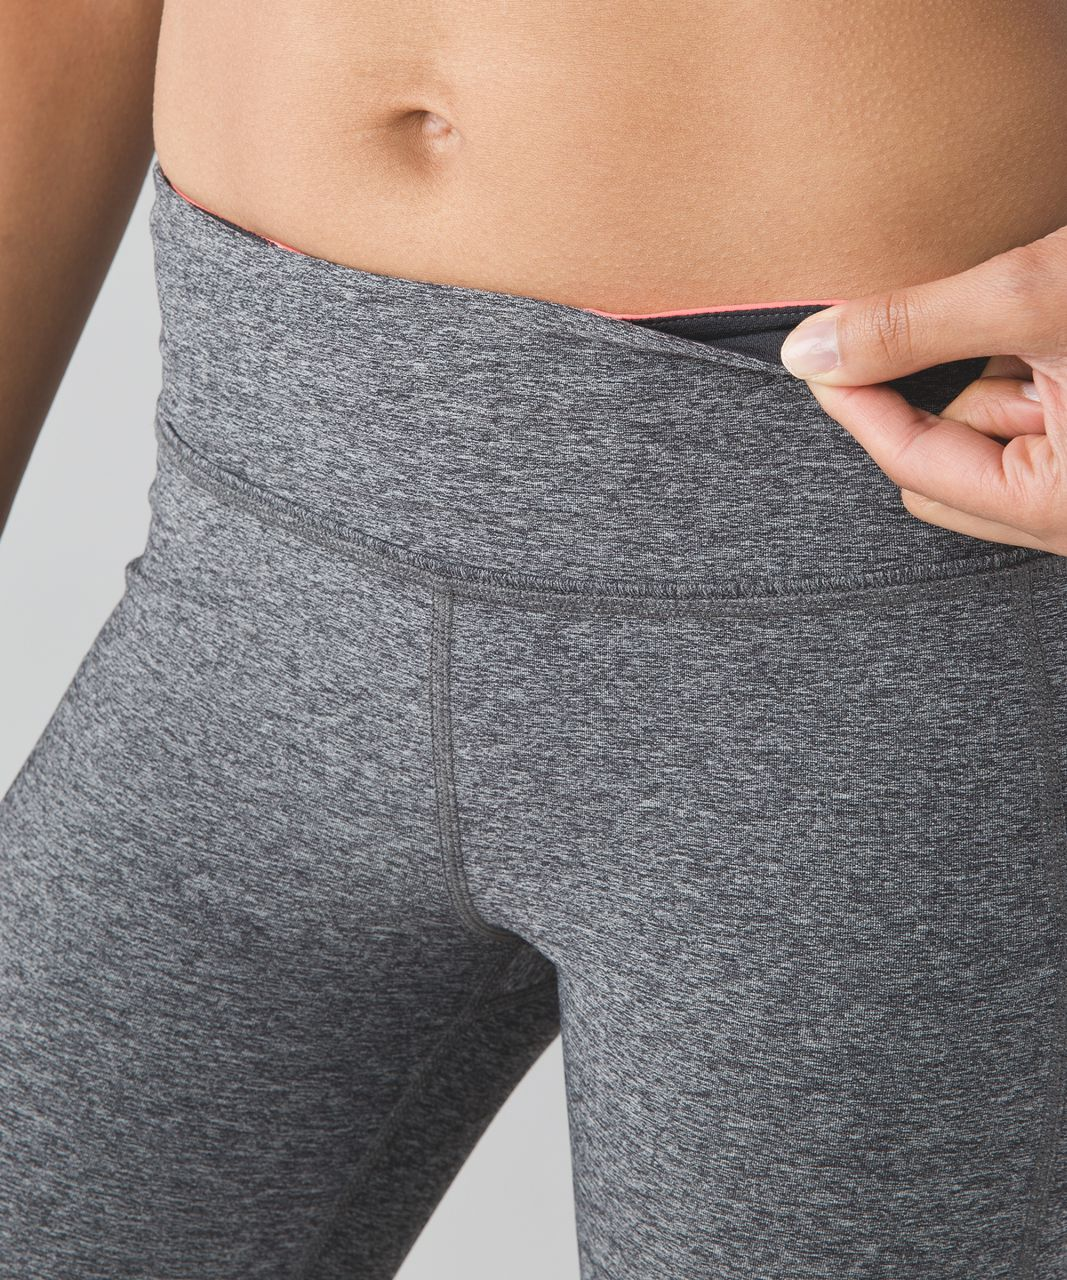 "Lululemon Pace Rival Crop *22"" - Heathered Black / Deep Coal / Very Light Flare"